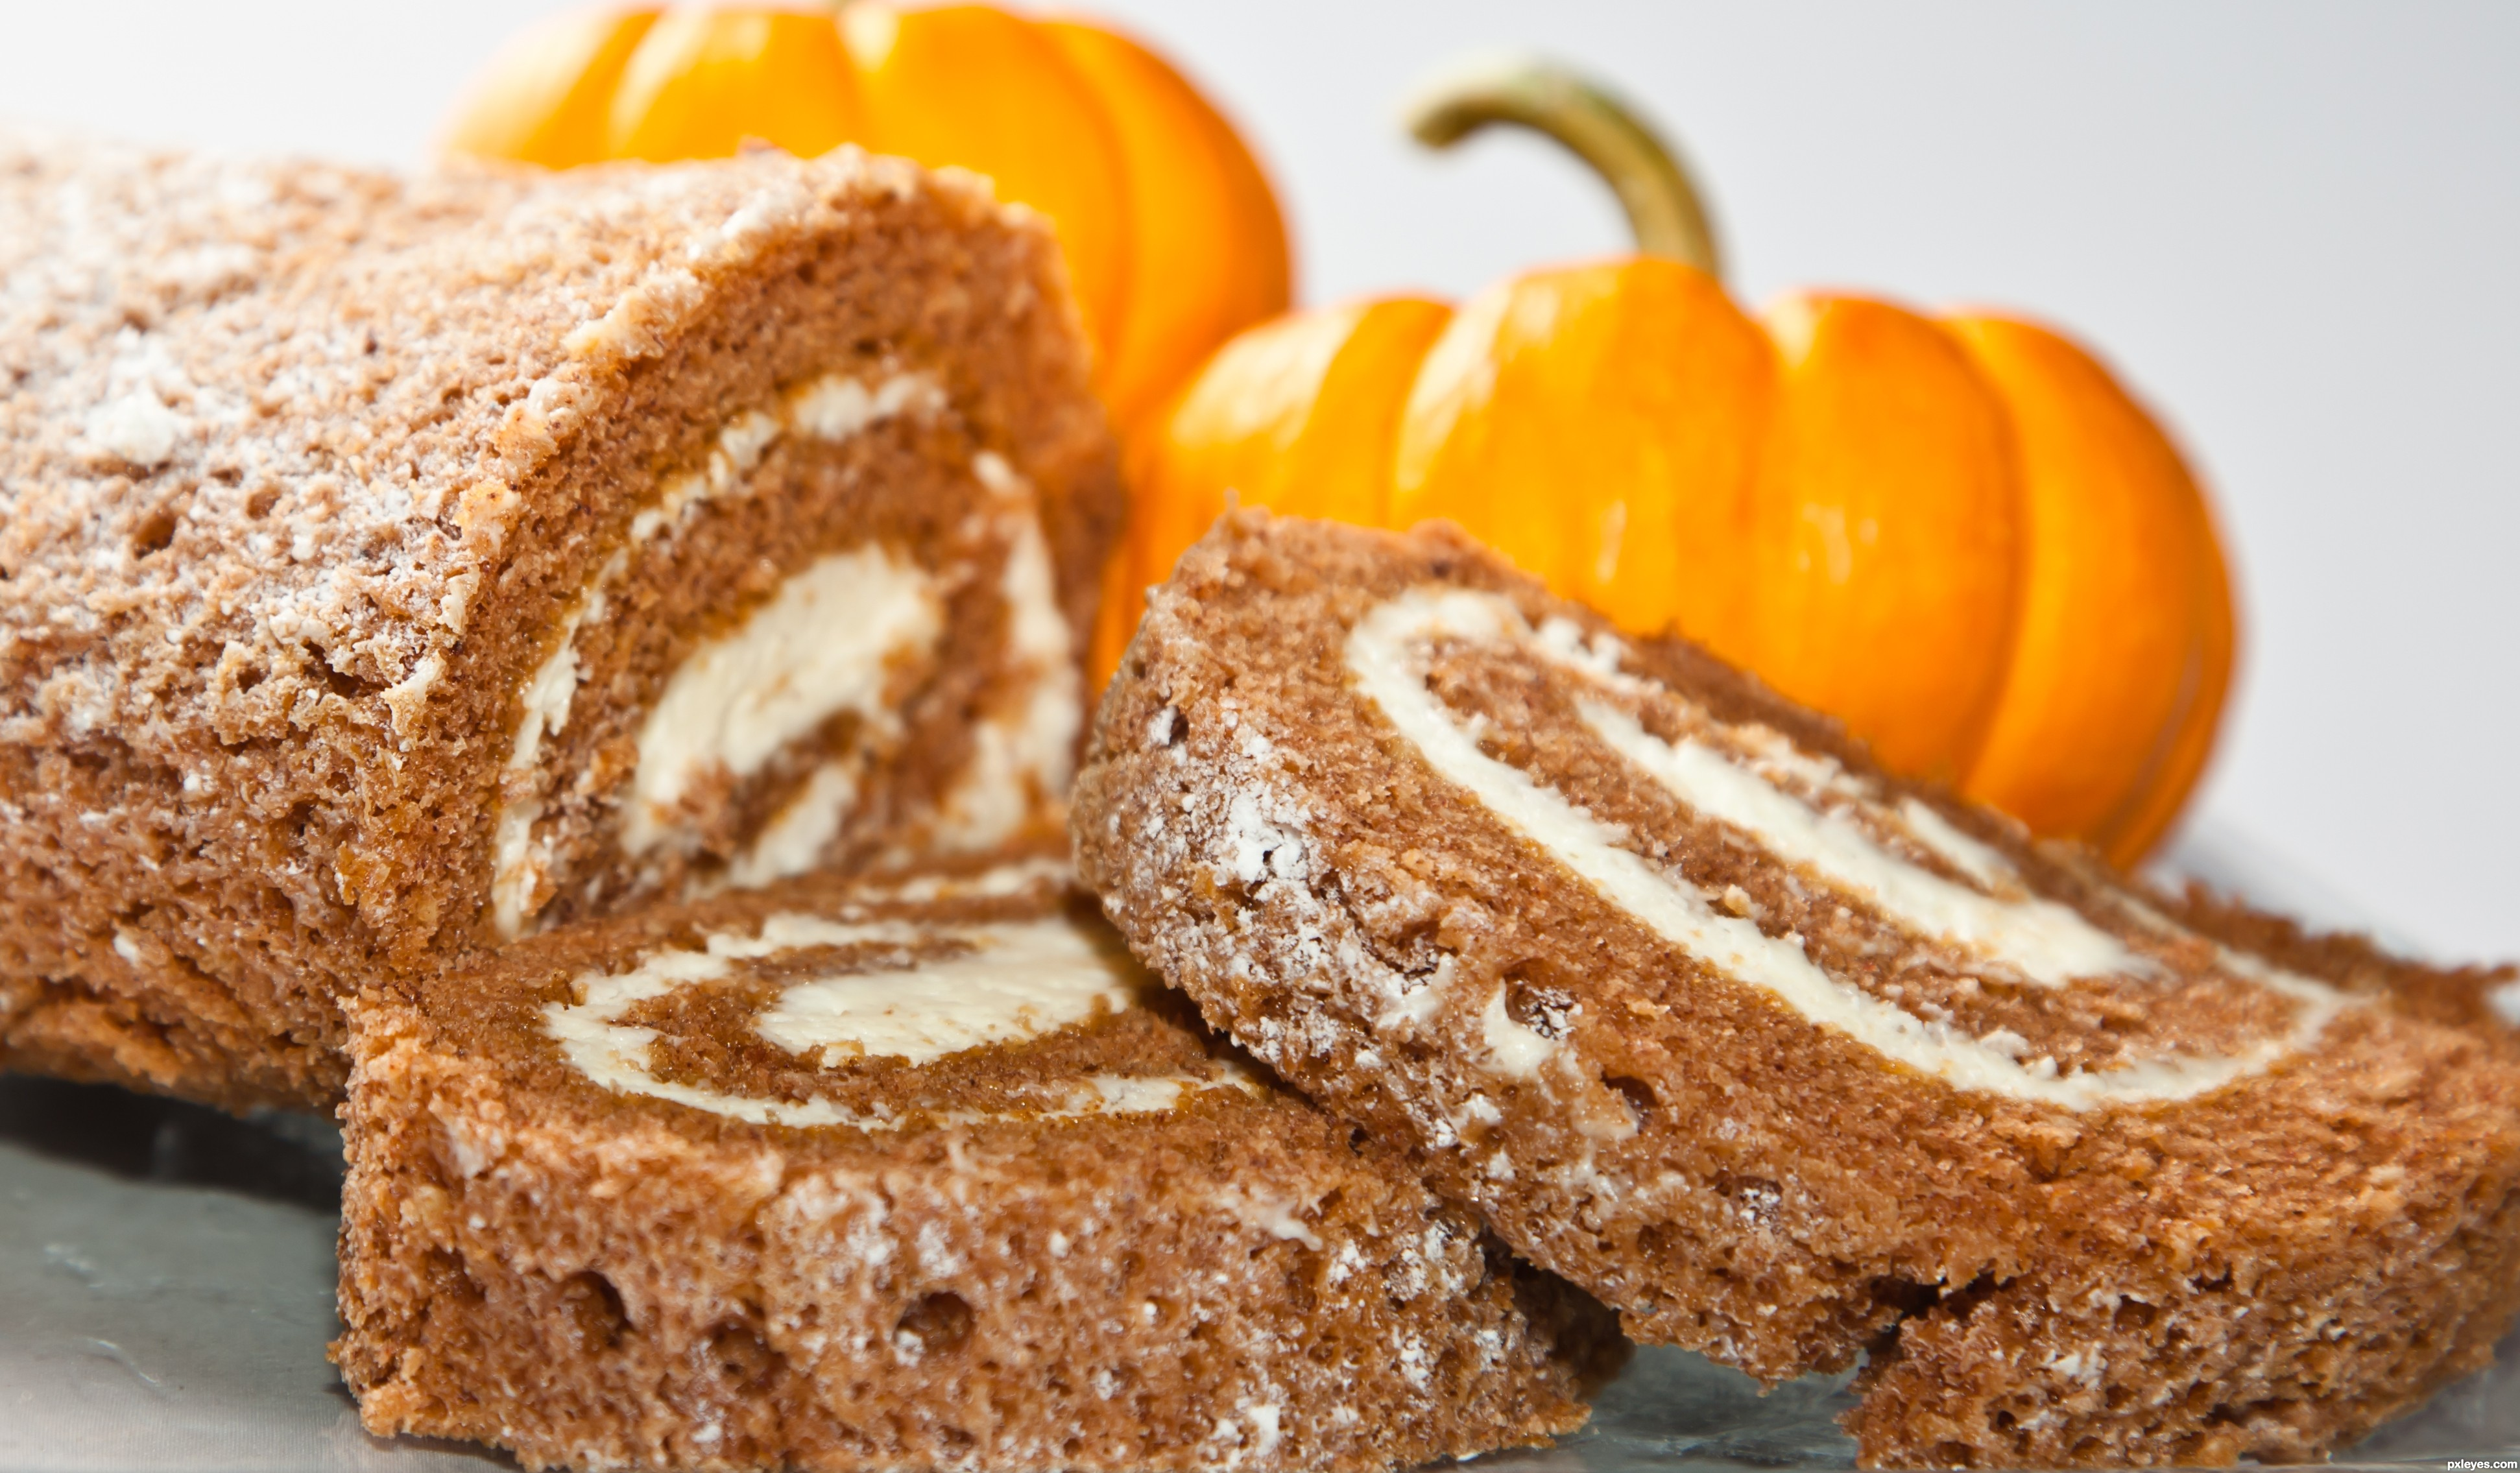 https://i2.wp.com/www.pxleyes.com/images/contests/sweet-desserts/fullsize/Pumpkin-Roll-4e698258929b6_hires.jpg